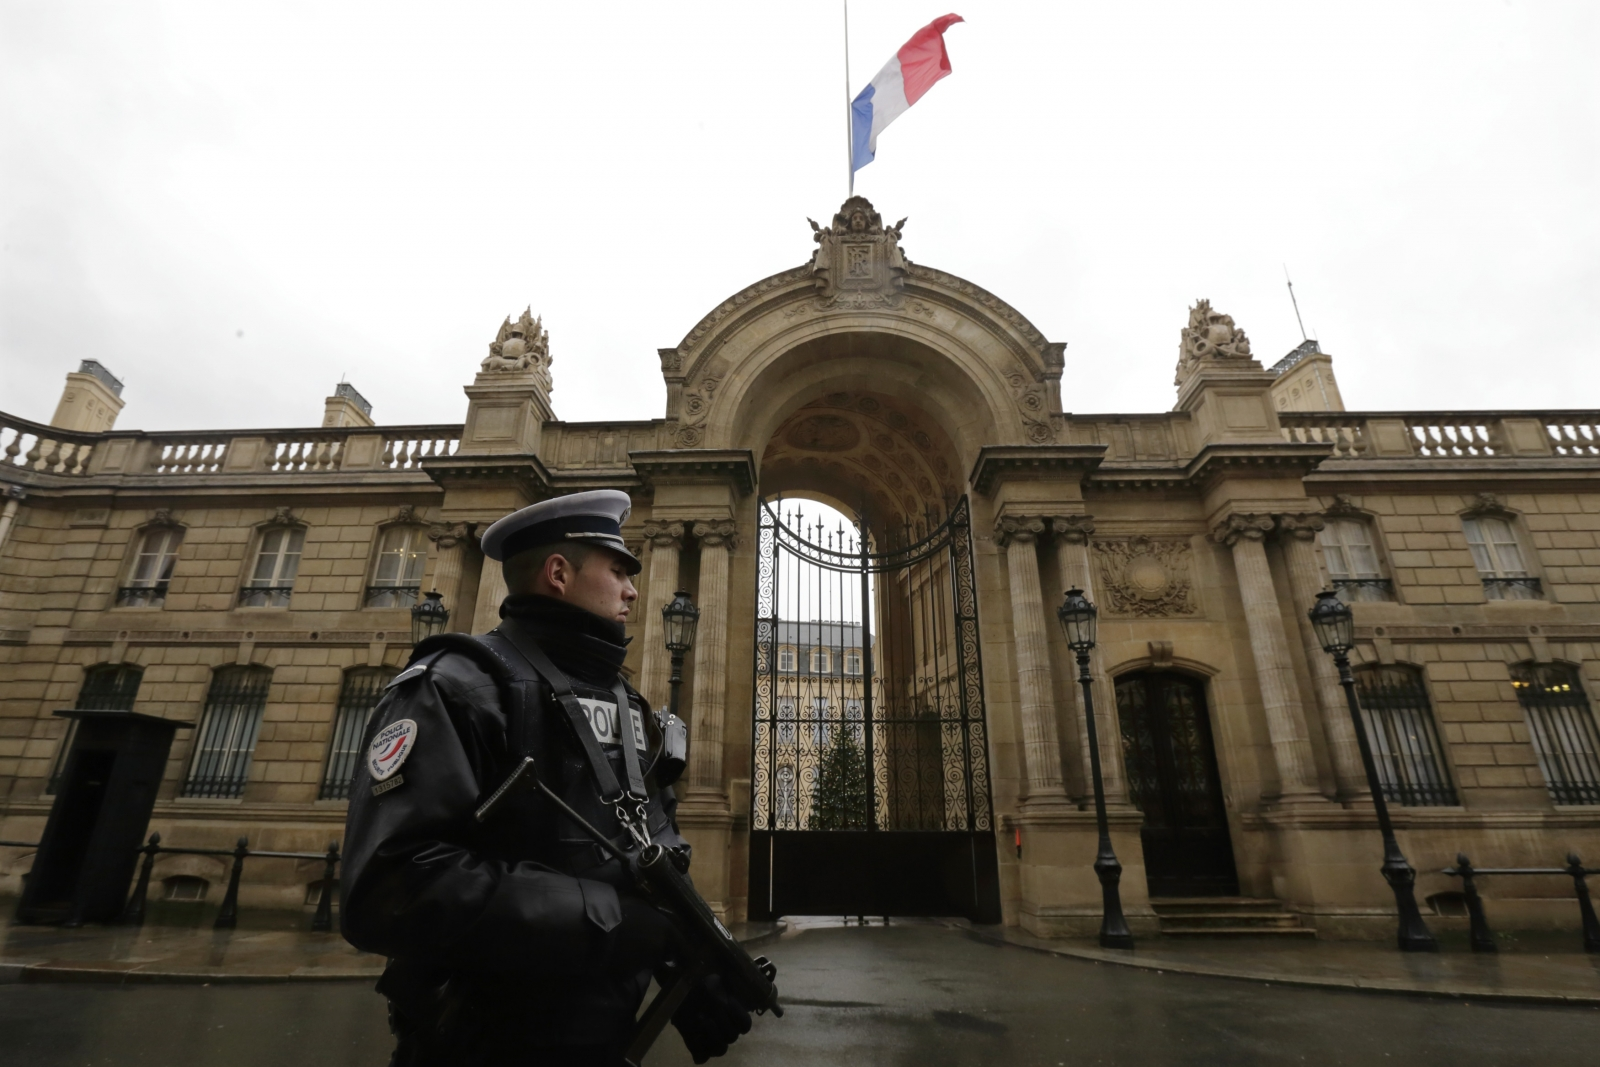 France will replace 10,000 troops deployed under the highest level of